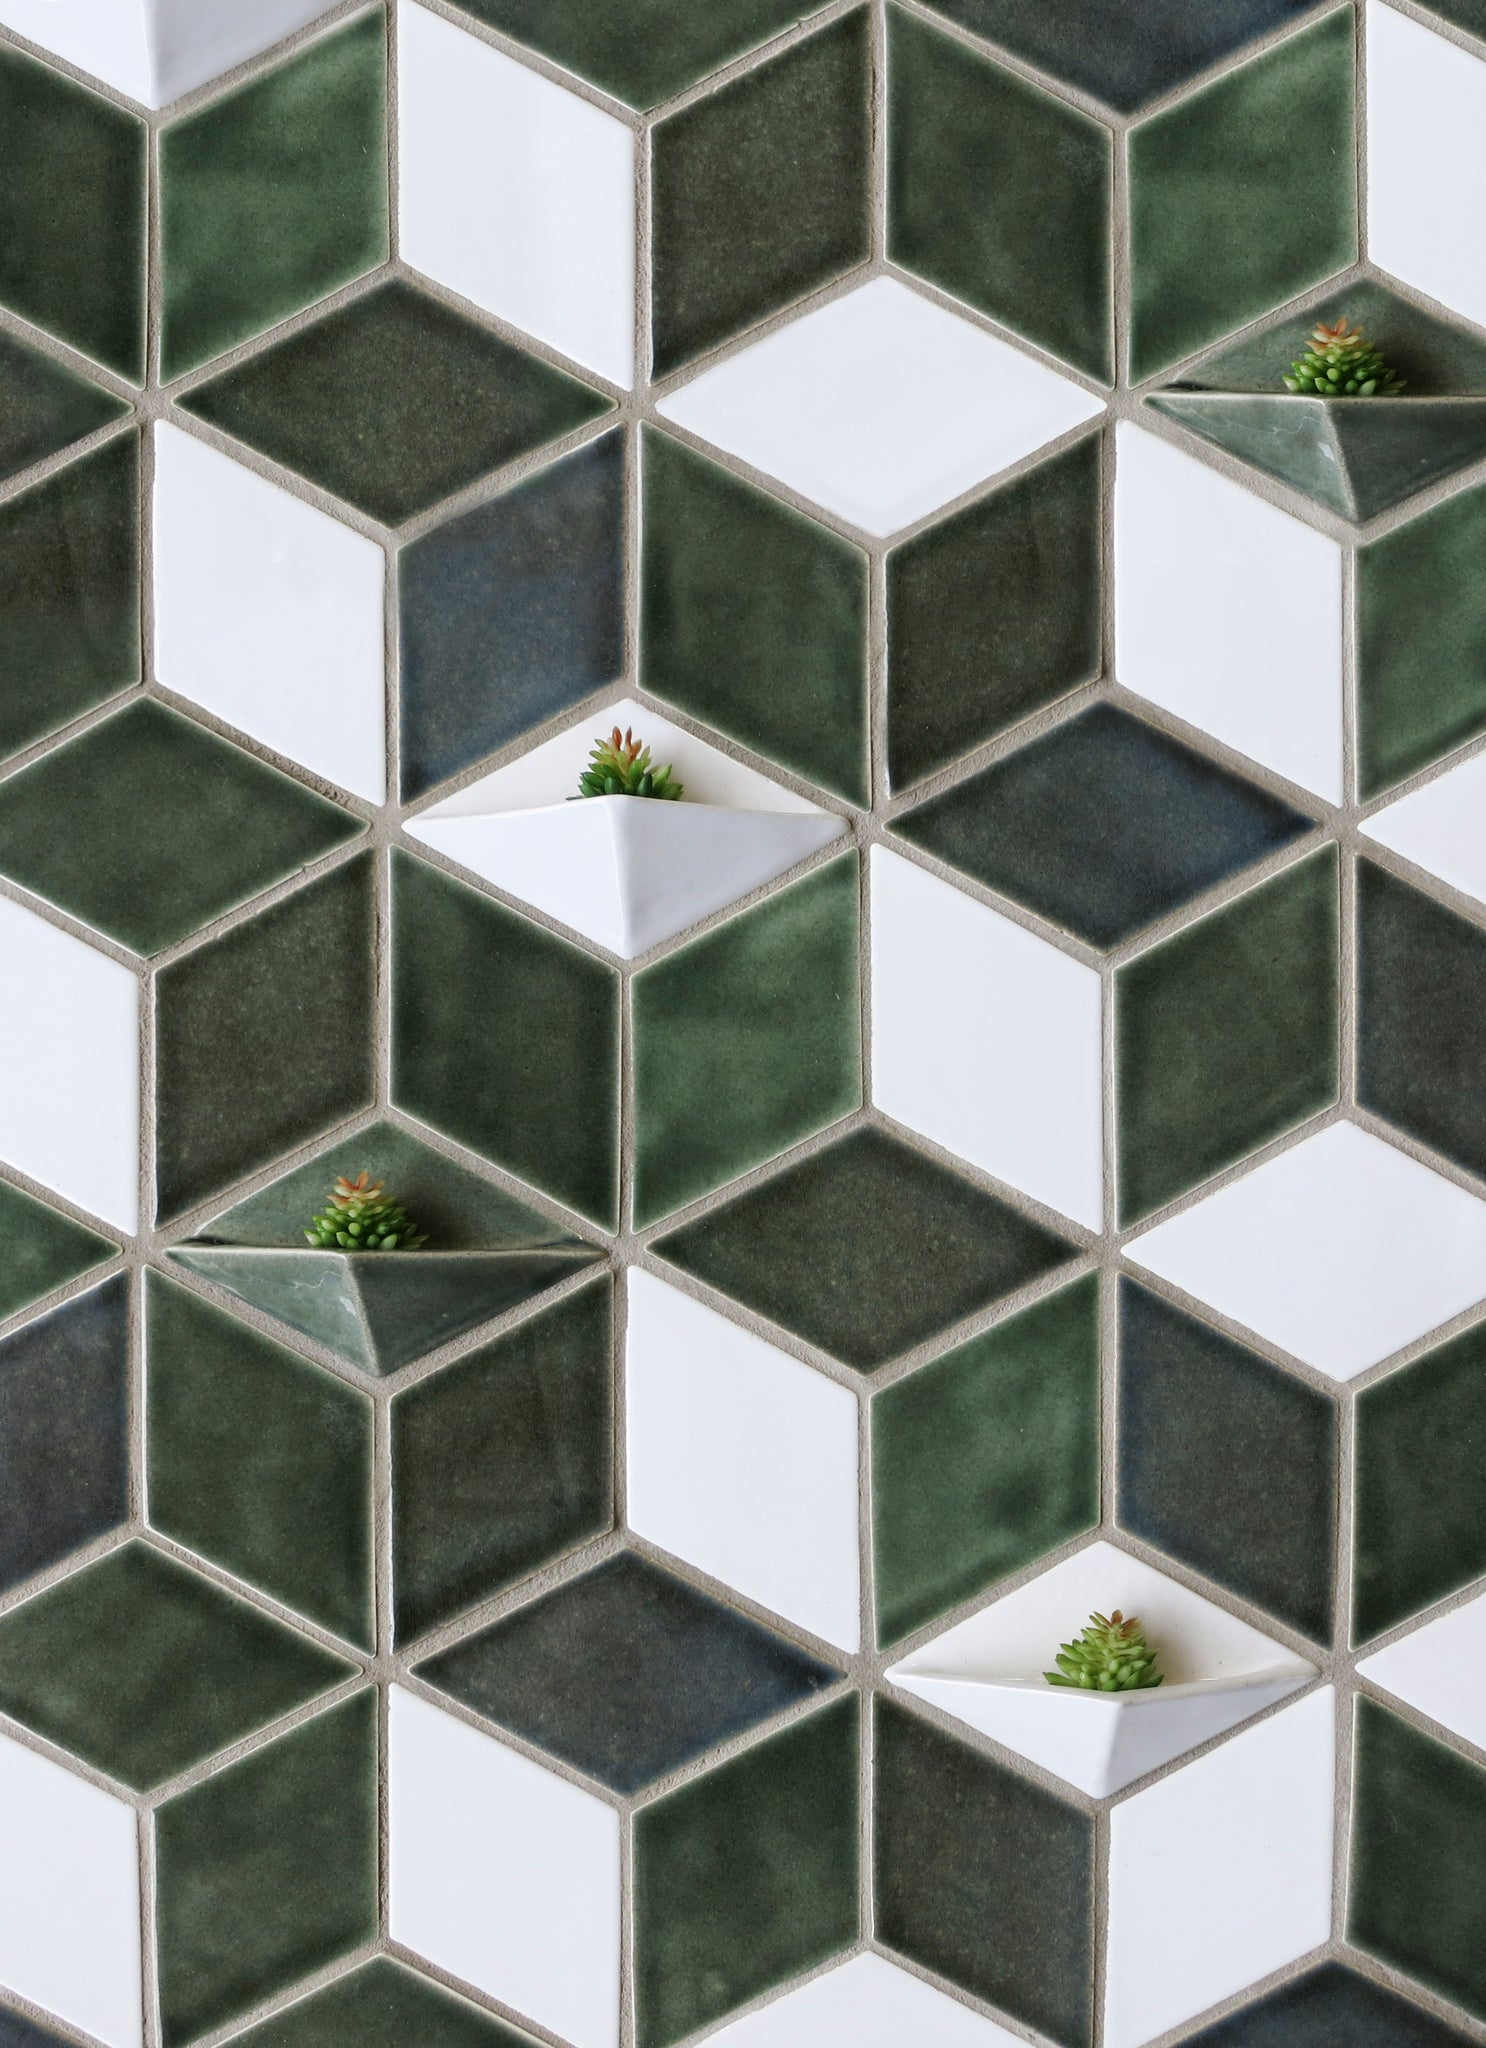 Diamond Tiles with Plant Holders